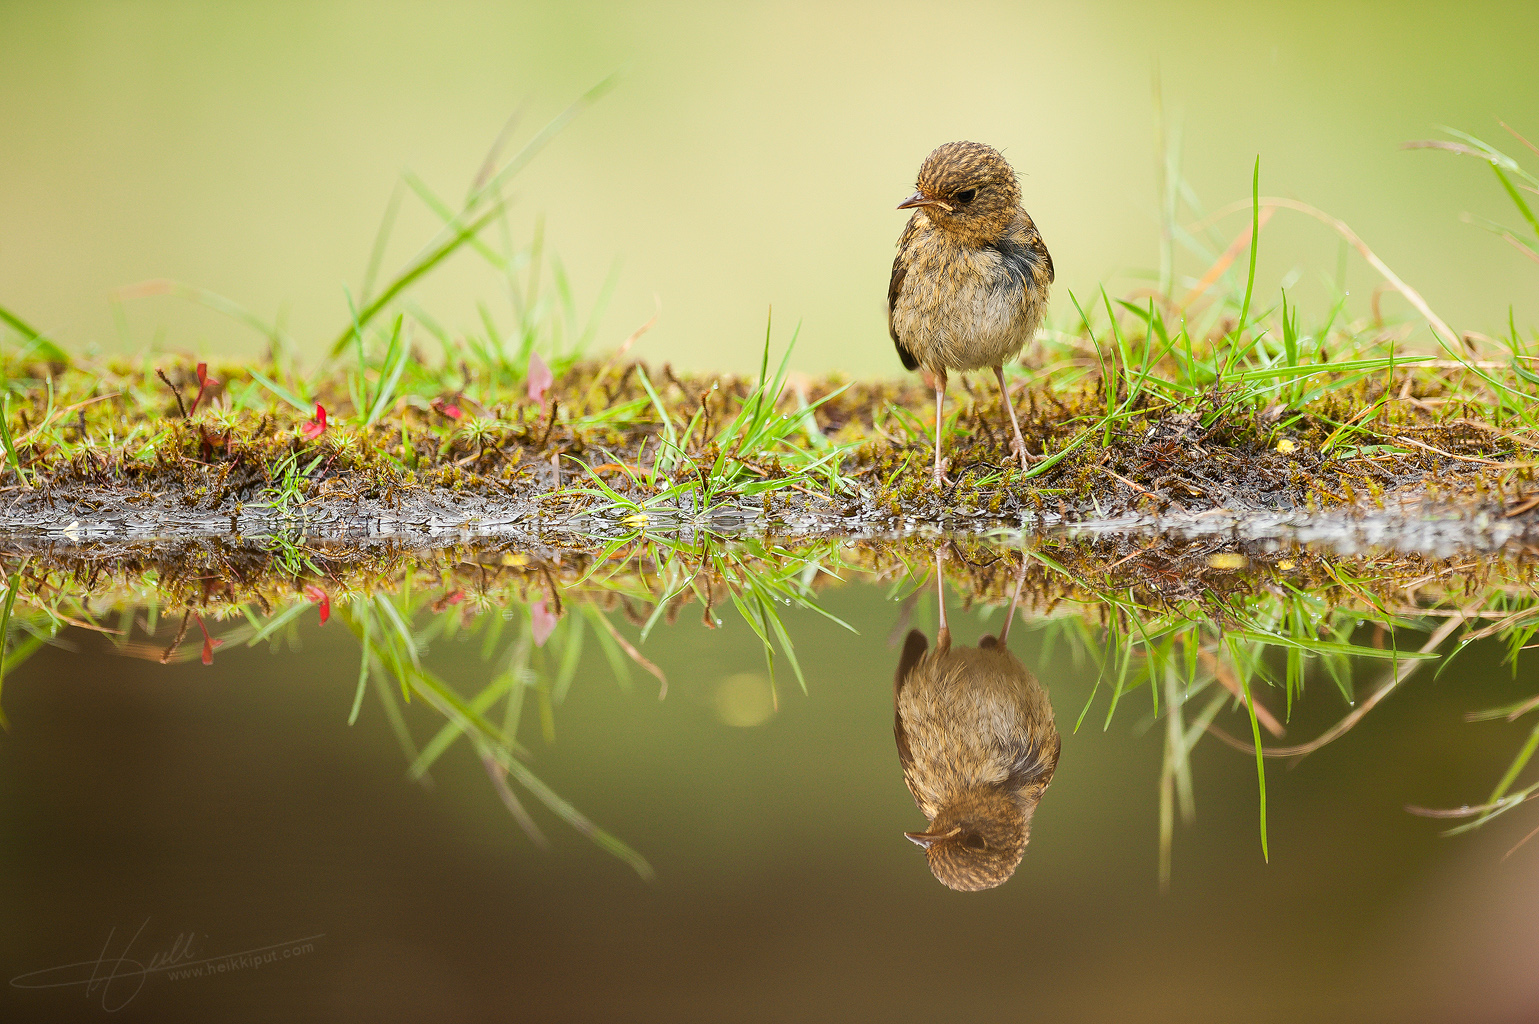 Juvenile European Robin discovering its reflection  (Erithacus rubecula) on HeikkiPut.com - Nature & Wildlife Photography